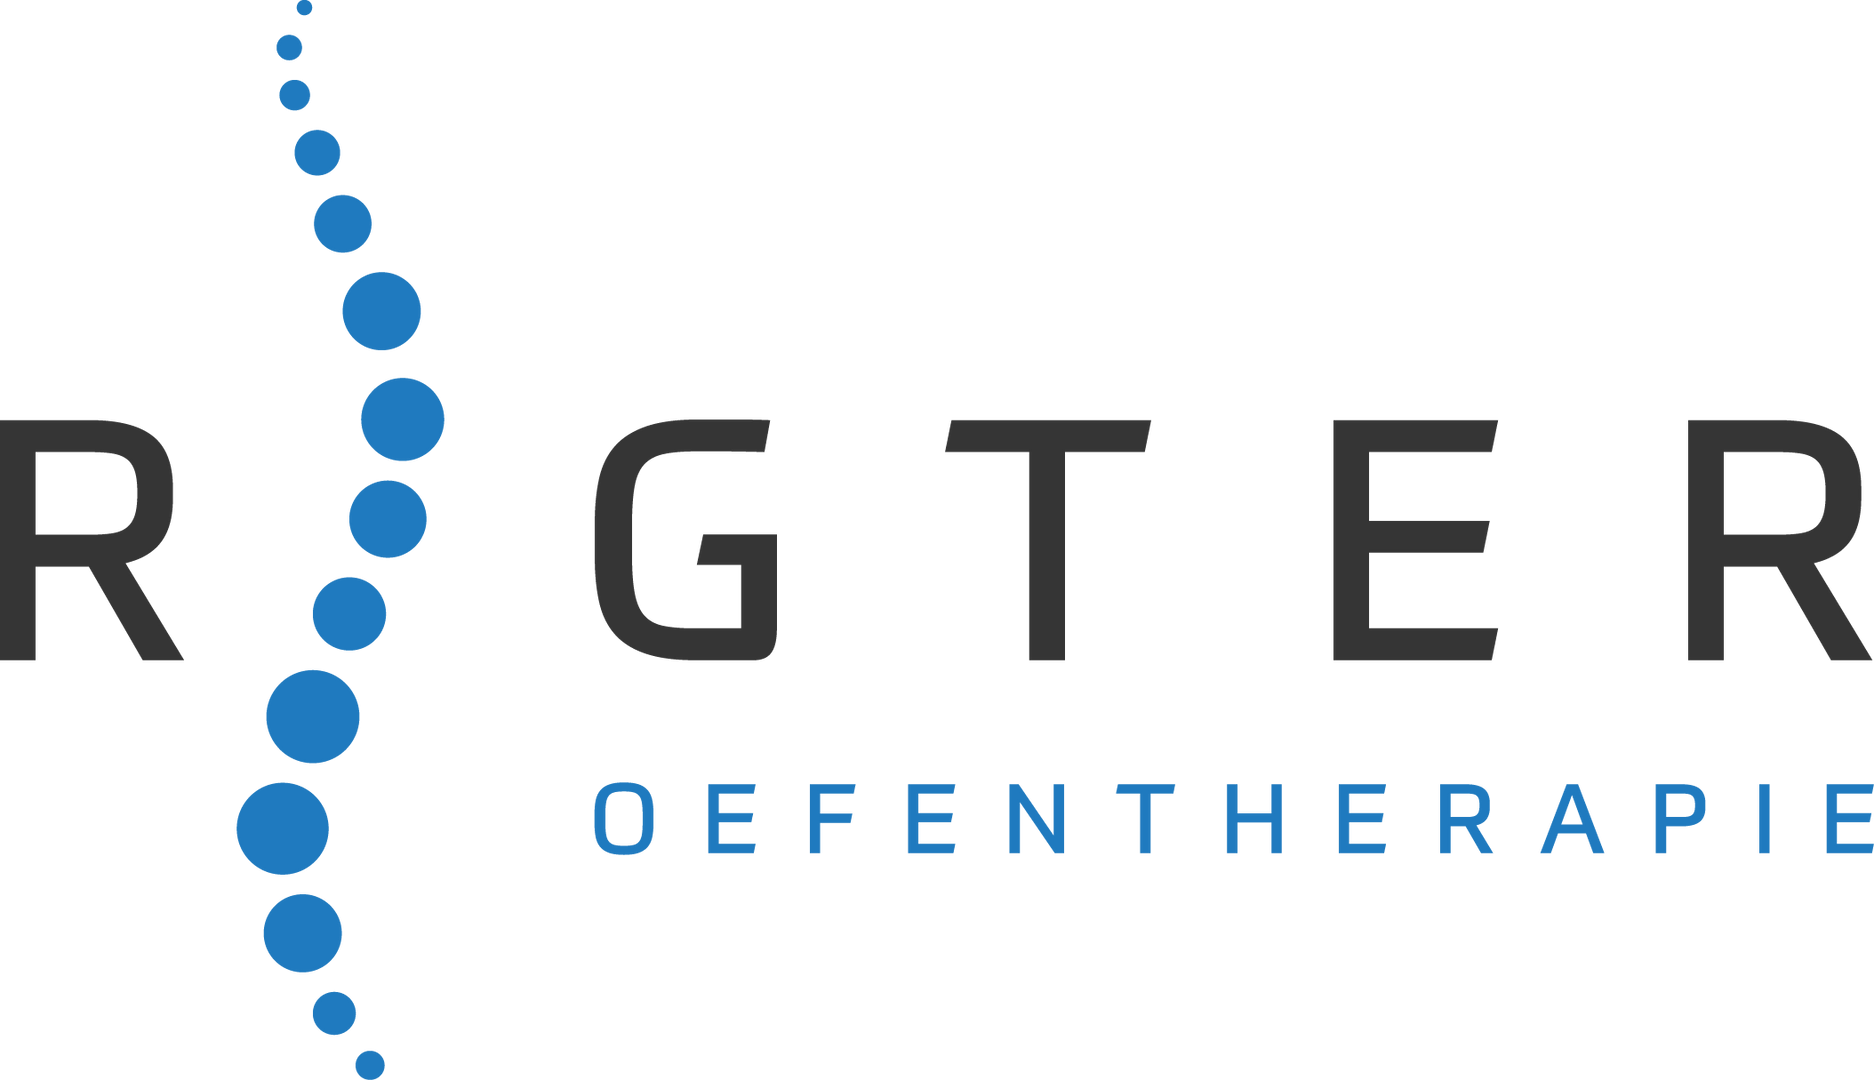 Rigter-logo-oefentherapie.png